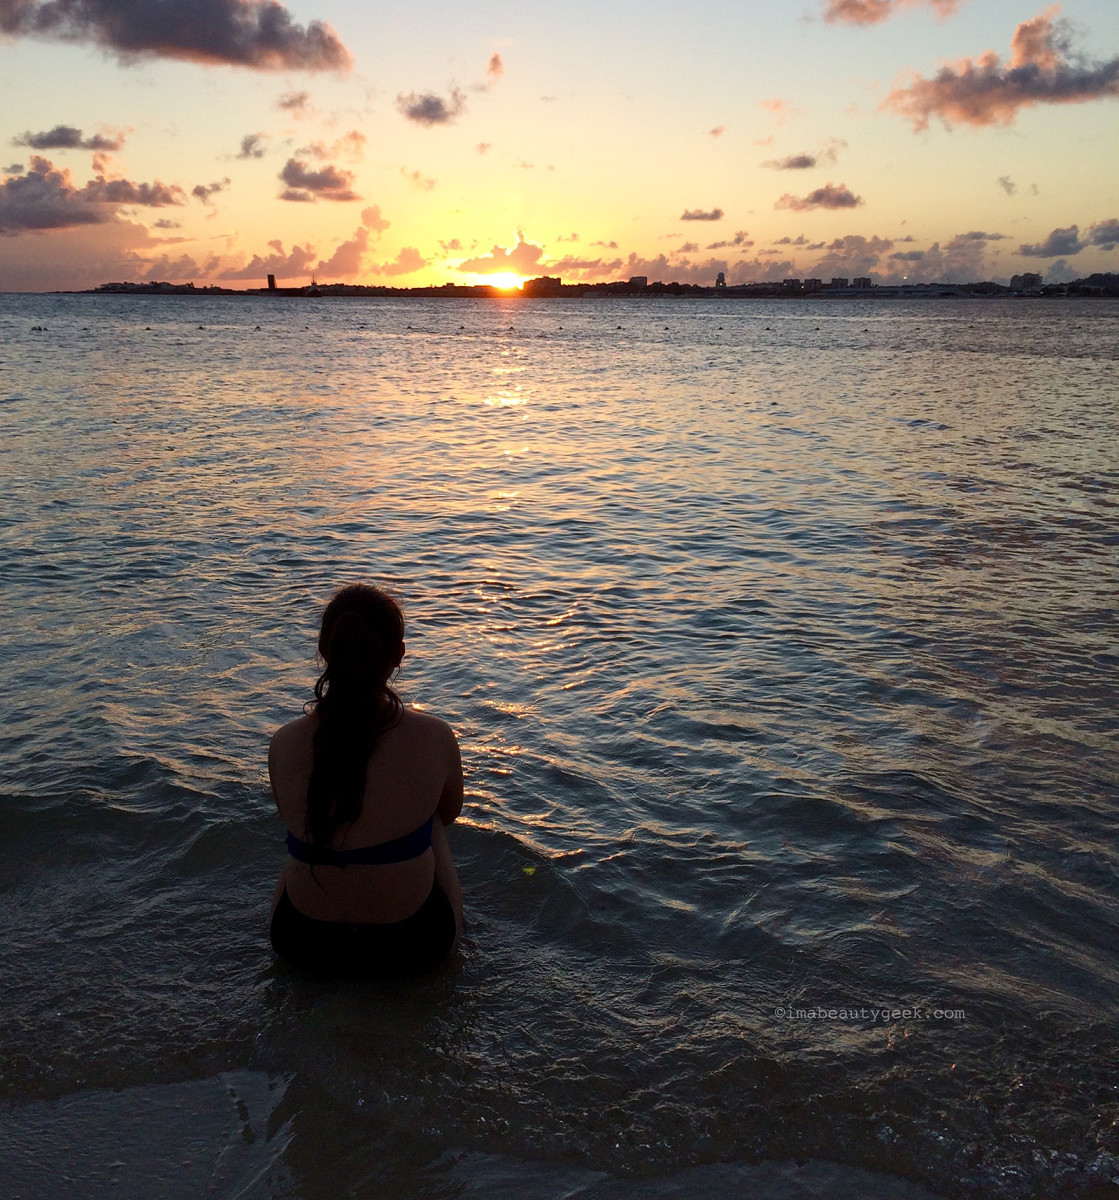 psoriatic arthritis, summer and breaking the double-whammy